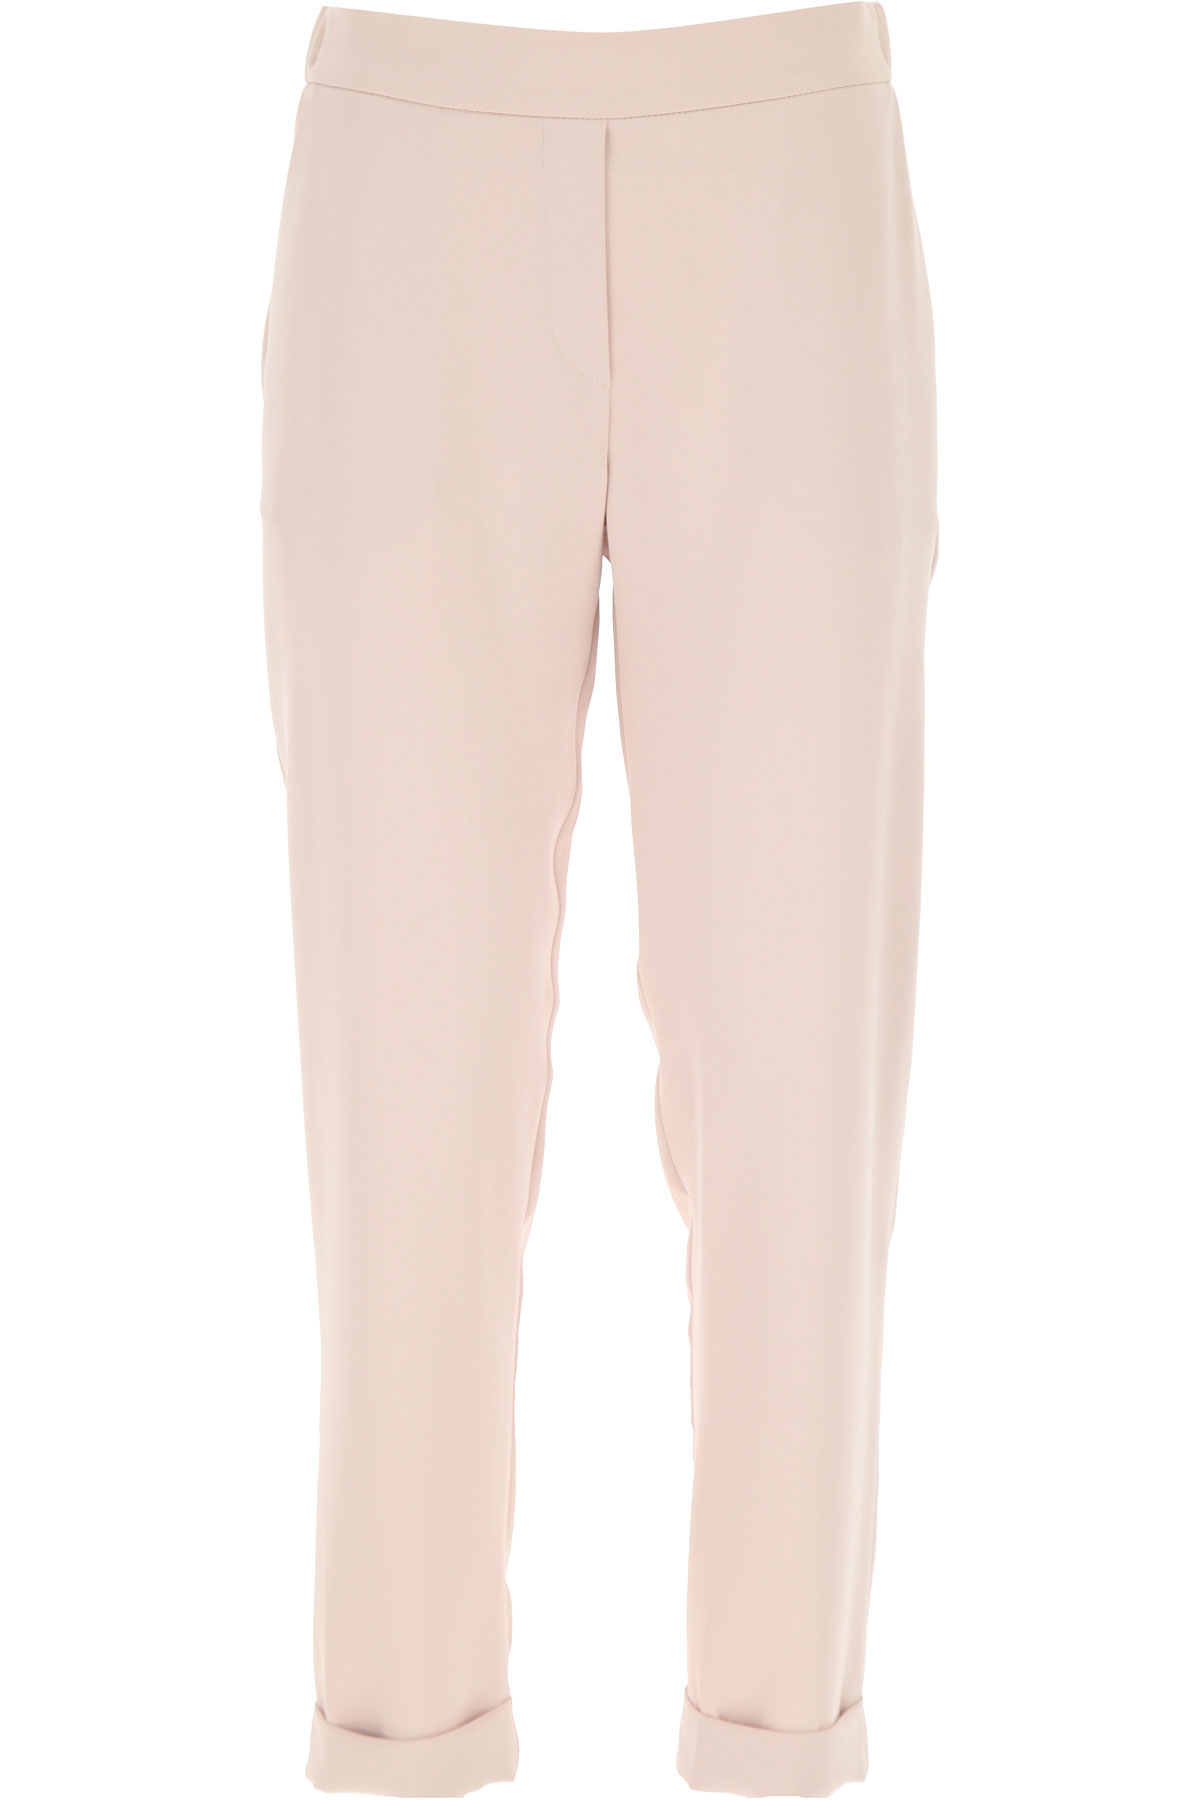 P.A.R.O.S.H. Pants for Women On Sale, Pink, polyester, 2019, 26 28 4 6 8